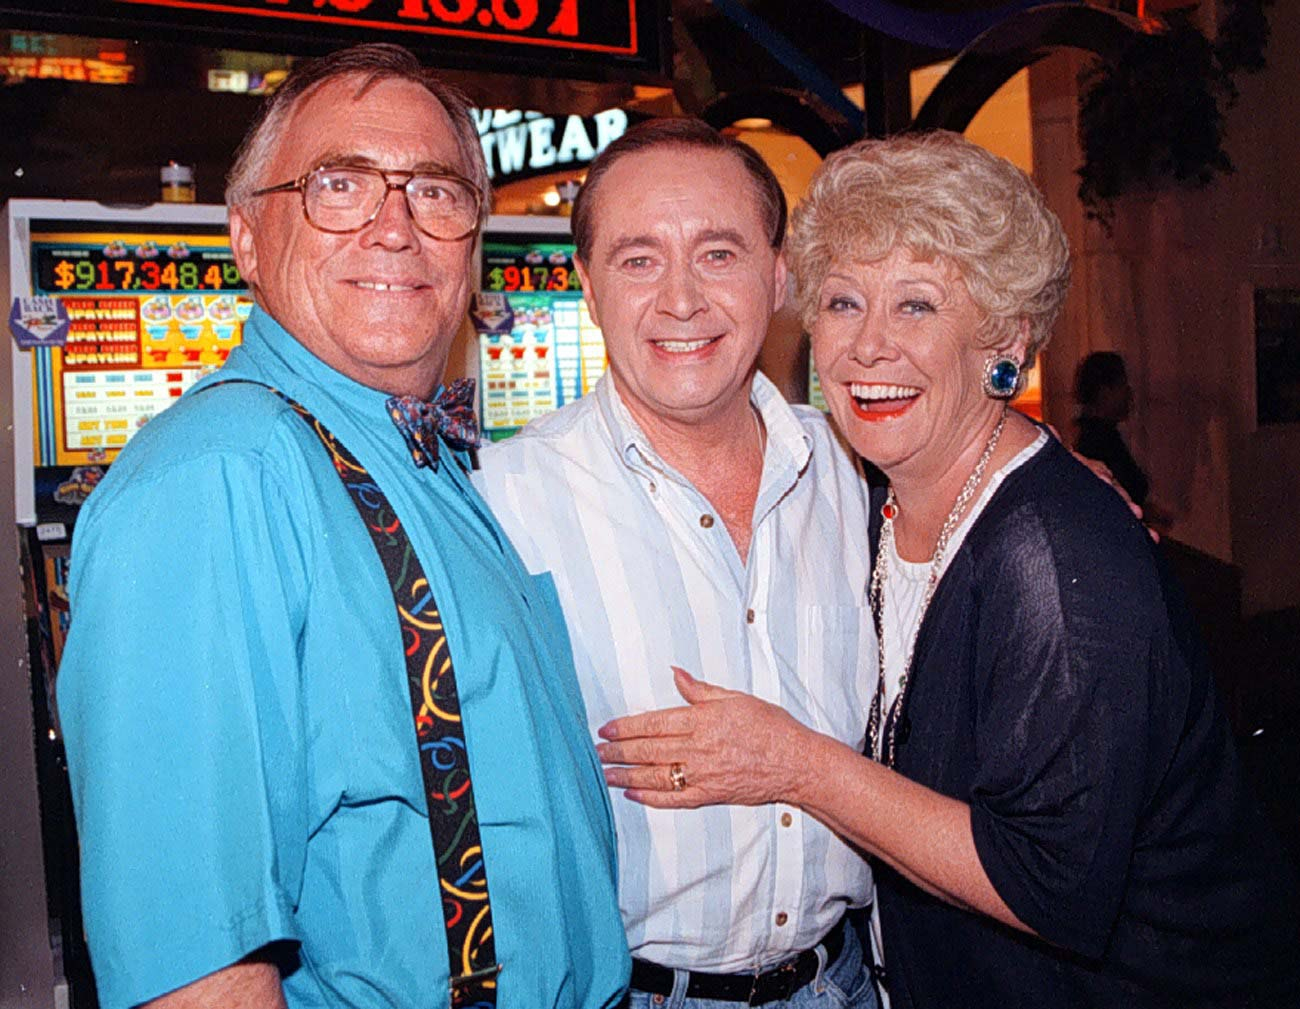 """File photo dated 23/09/1997 of Coronation Street actors, Jack (left) and Vera Duckworth played by Bill Tarmey and Liz Dawn with Street veteran Ray Langton, played by Neville Buswell (centre) as they meet in Las Vegas during the filming of a special Coronation Street video. Coronation Street has paid tribute to actor Neville Buswell, saying it was """"saddened"""" to hear of his death. PA Photo. Issue date: Monday January 27, 2020. The former star of the soap died on Christmas Day 2019 at the age of 76. The cause of death is not known. Buswell, who played Ray Langton in Weatherfield for 10 years, is thought to have died in Las Vegas, where he lived. See PA story DEATH Buswell. Photo credit should read: Dave Kendall/PA Wire"""